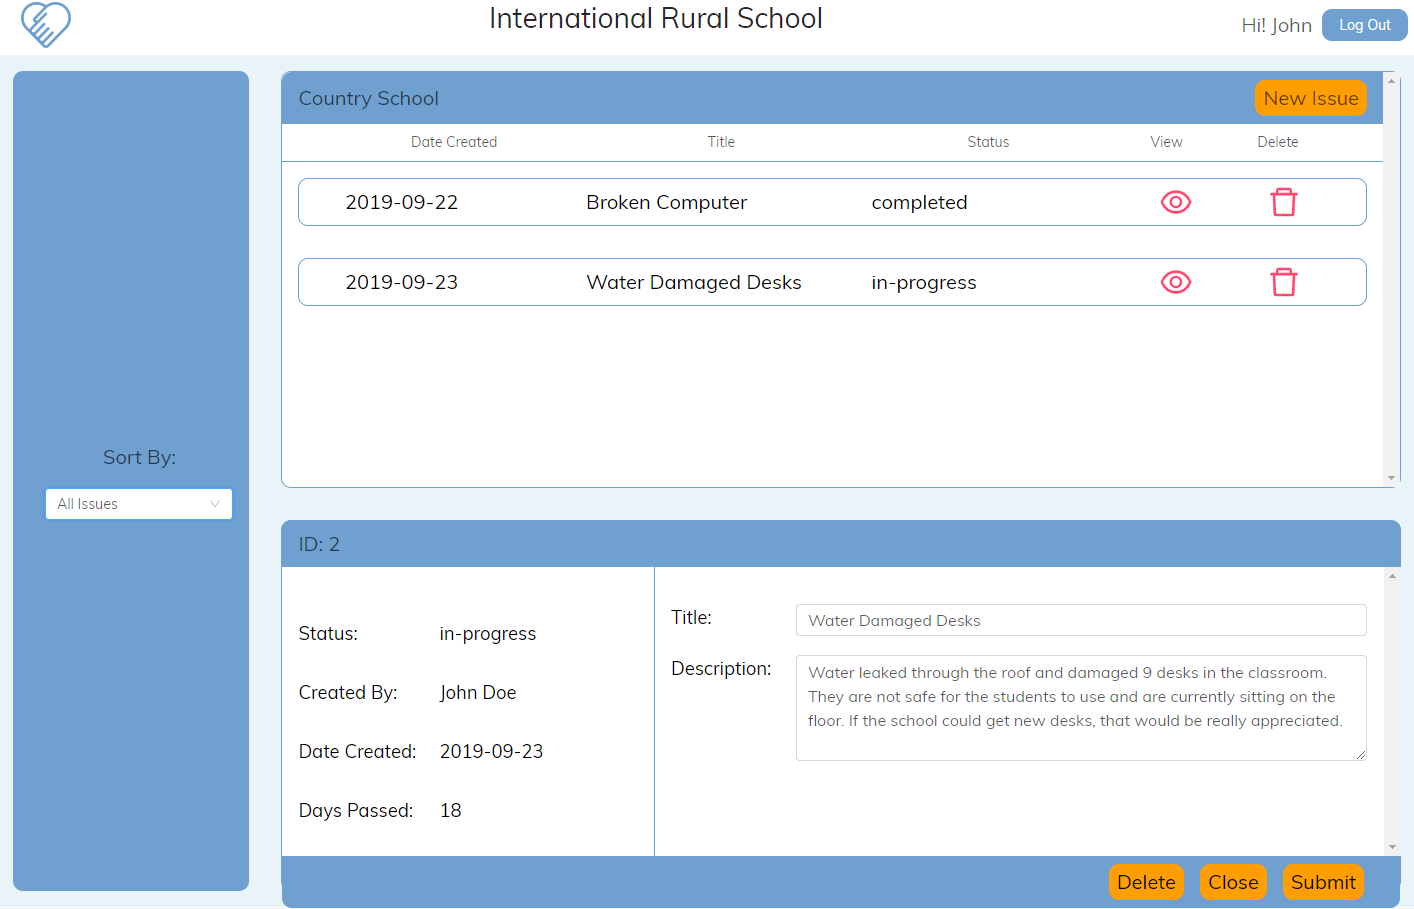 International Rural School Report Project